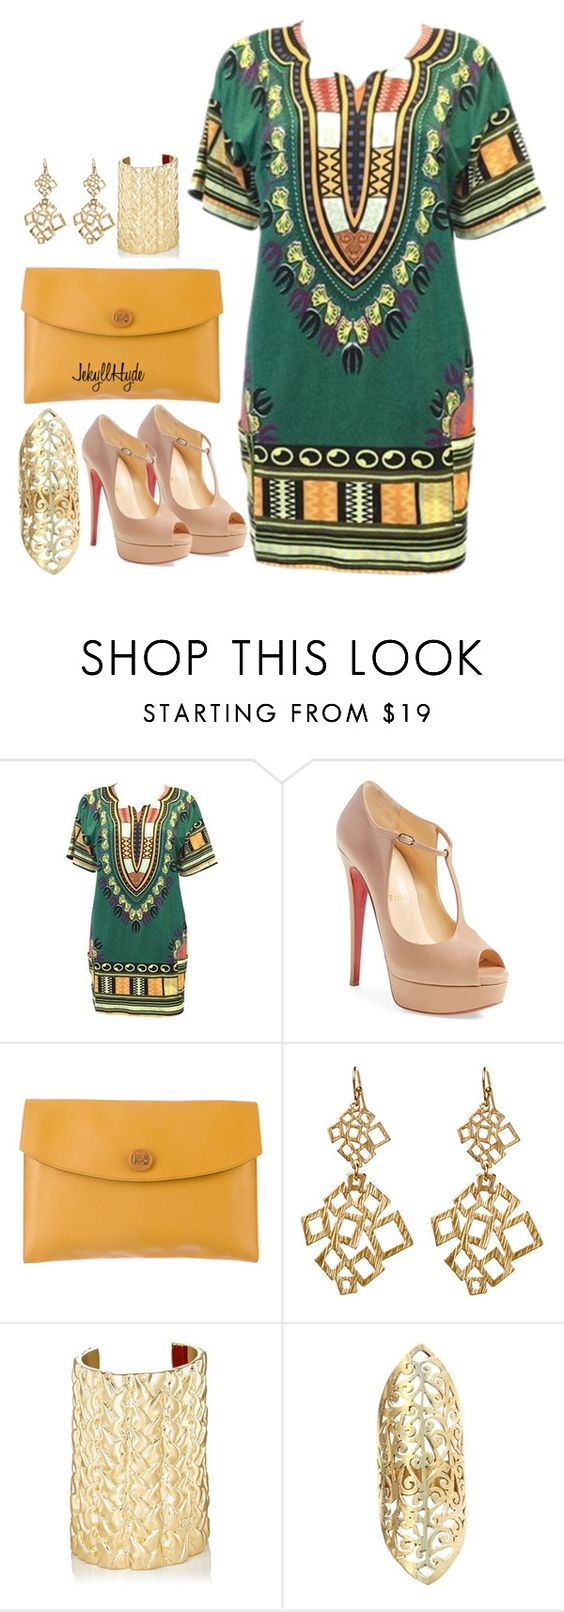 """Sydney"" by jekyllhyde on Polyvore featuring Christian Louboutin, Hermès, Amrita Singh, Jennifer Fisher, Urbiana, DateNight, nightonthetown, womensFashion and glamtime"